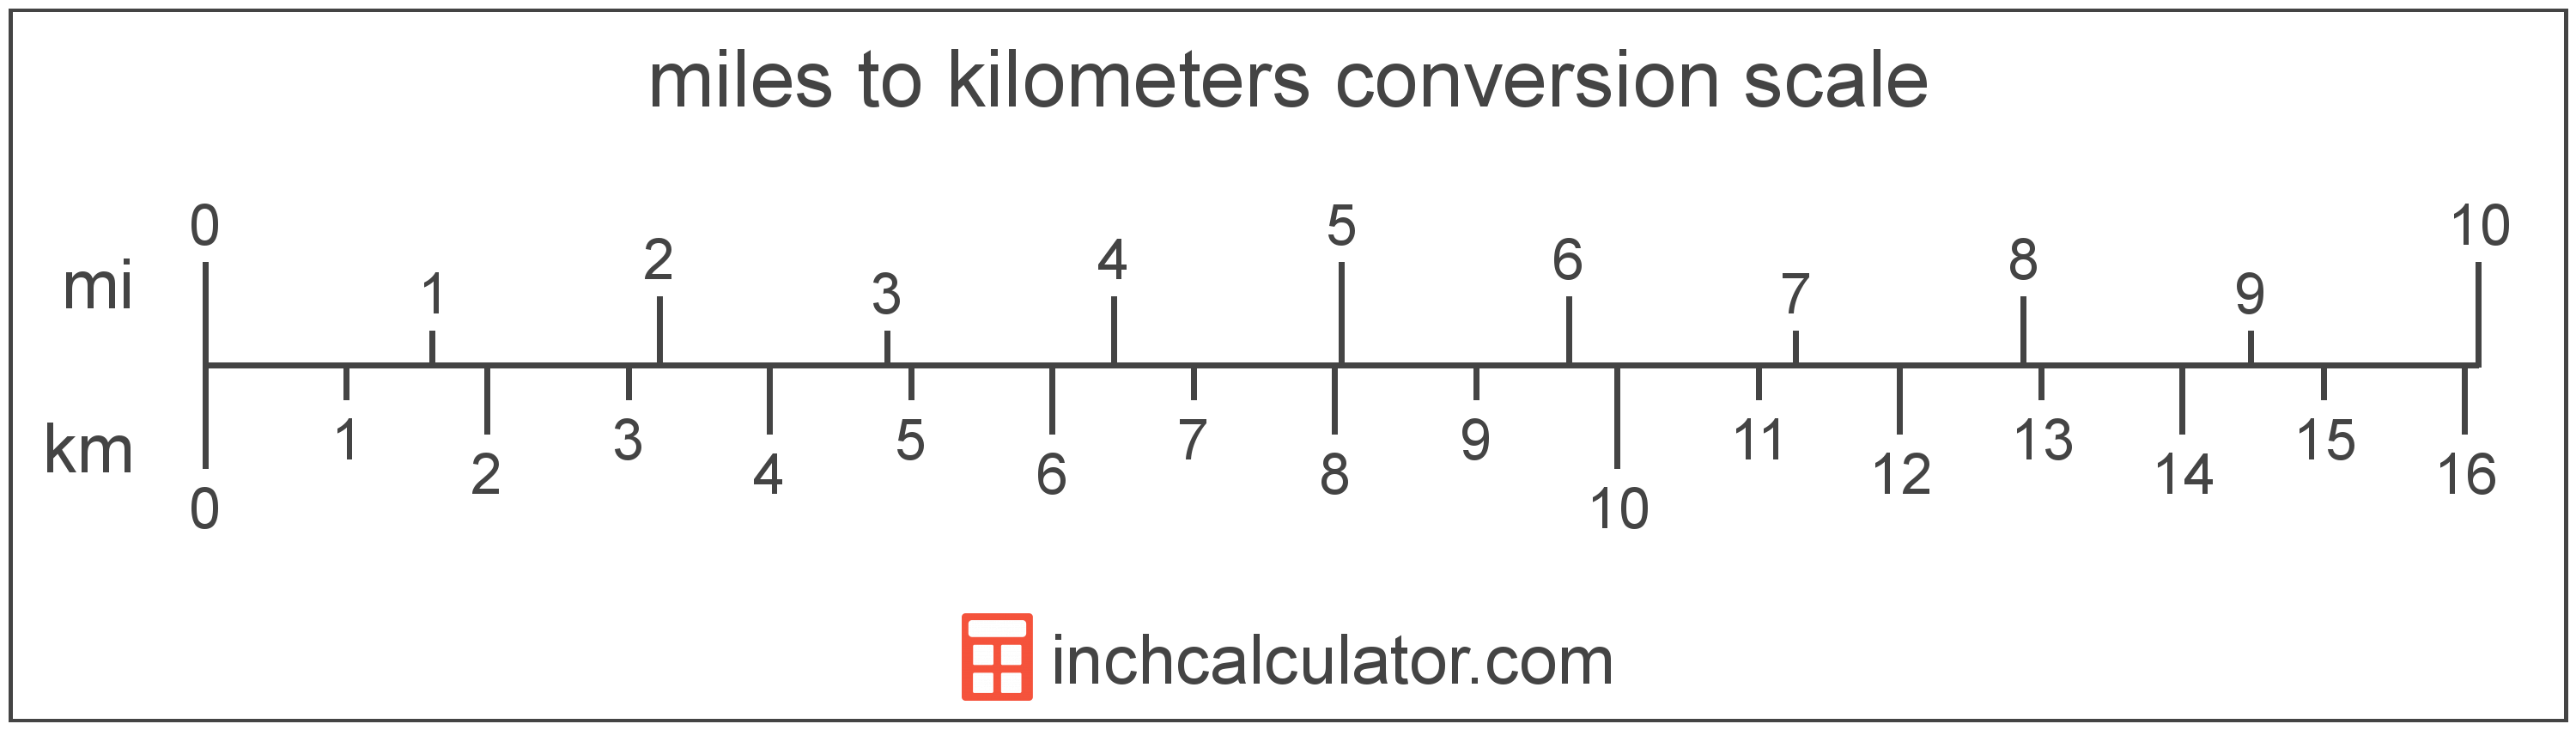 millimeters and kilometers are units used to measure length